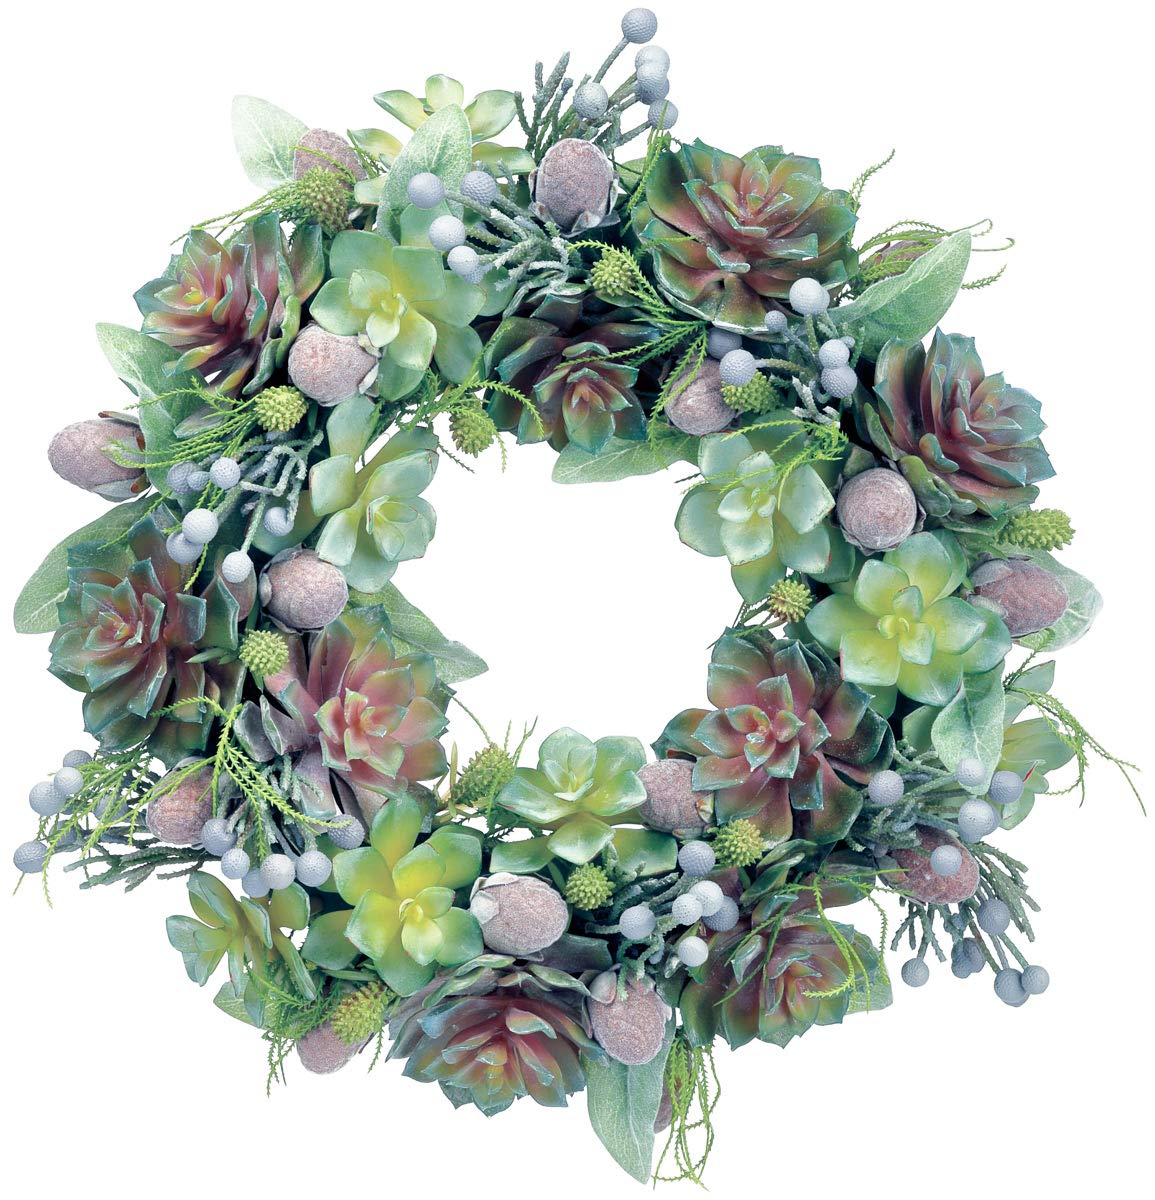 Ten Waterloo 18 Inch Succulent Wreath with Echeveria and Mixed Succulents, Spring and Summer Wreath, Artificial Plants